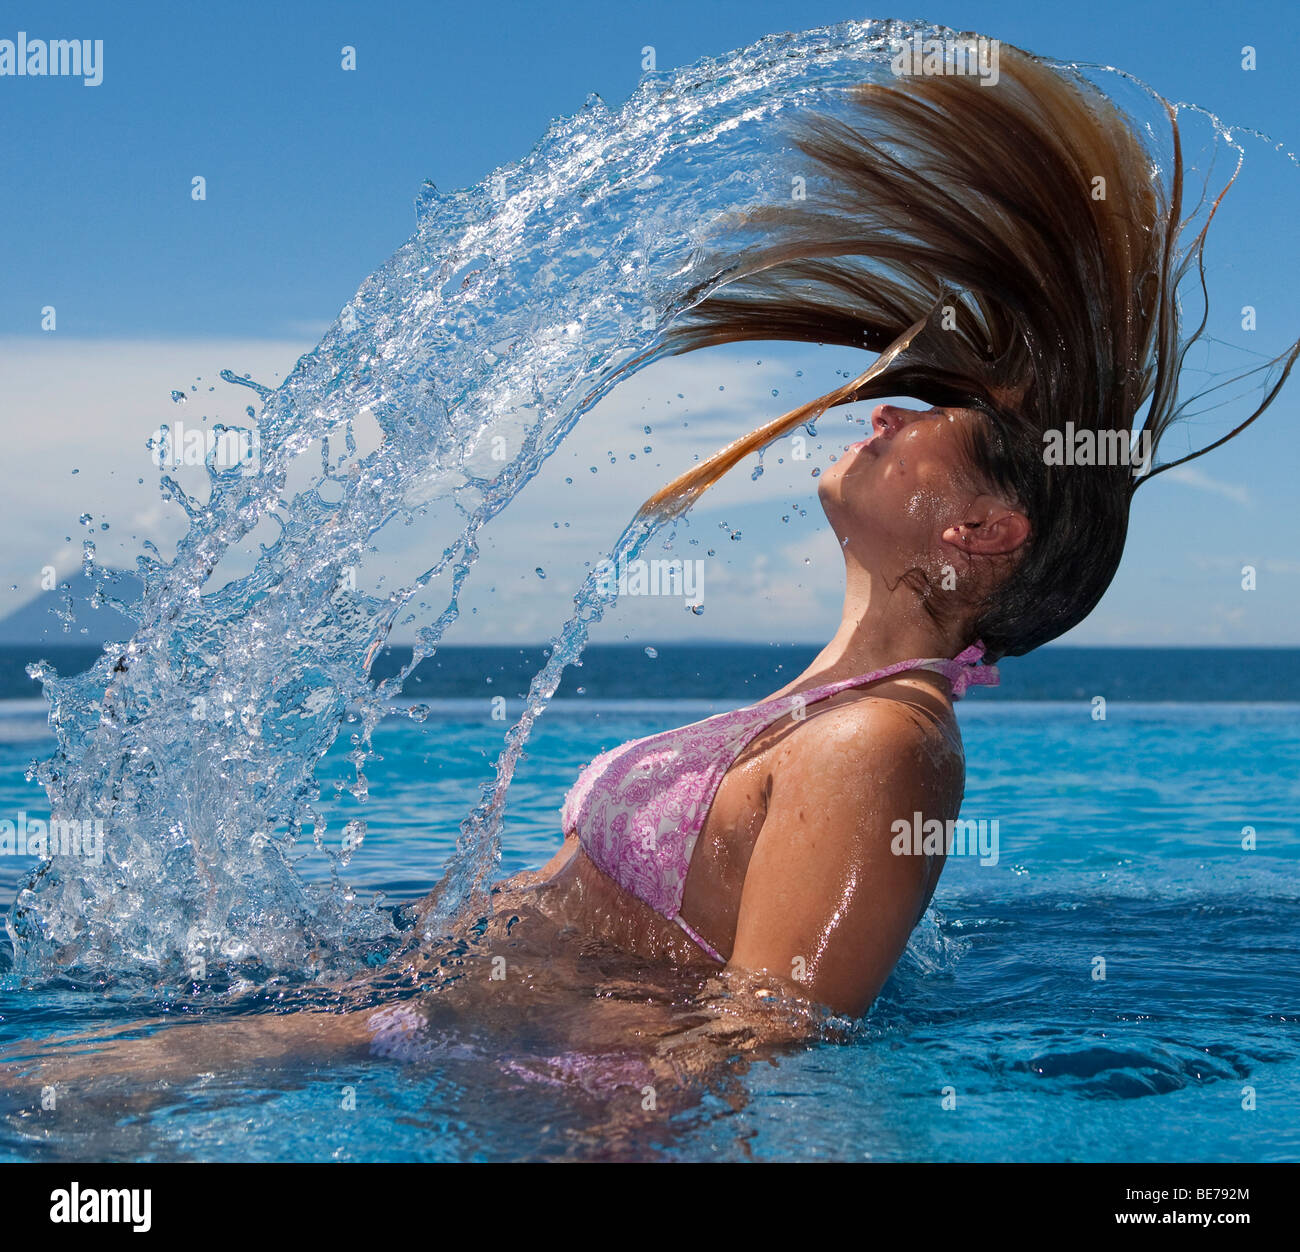 Girl playing in the pool, Indonesia, Southeast Asia - Stock Image